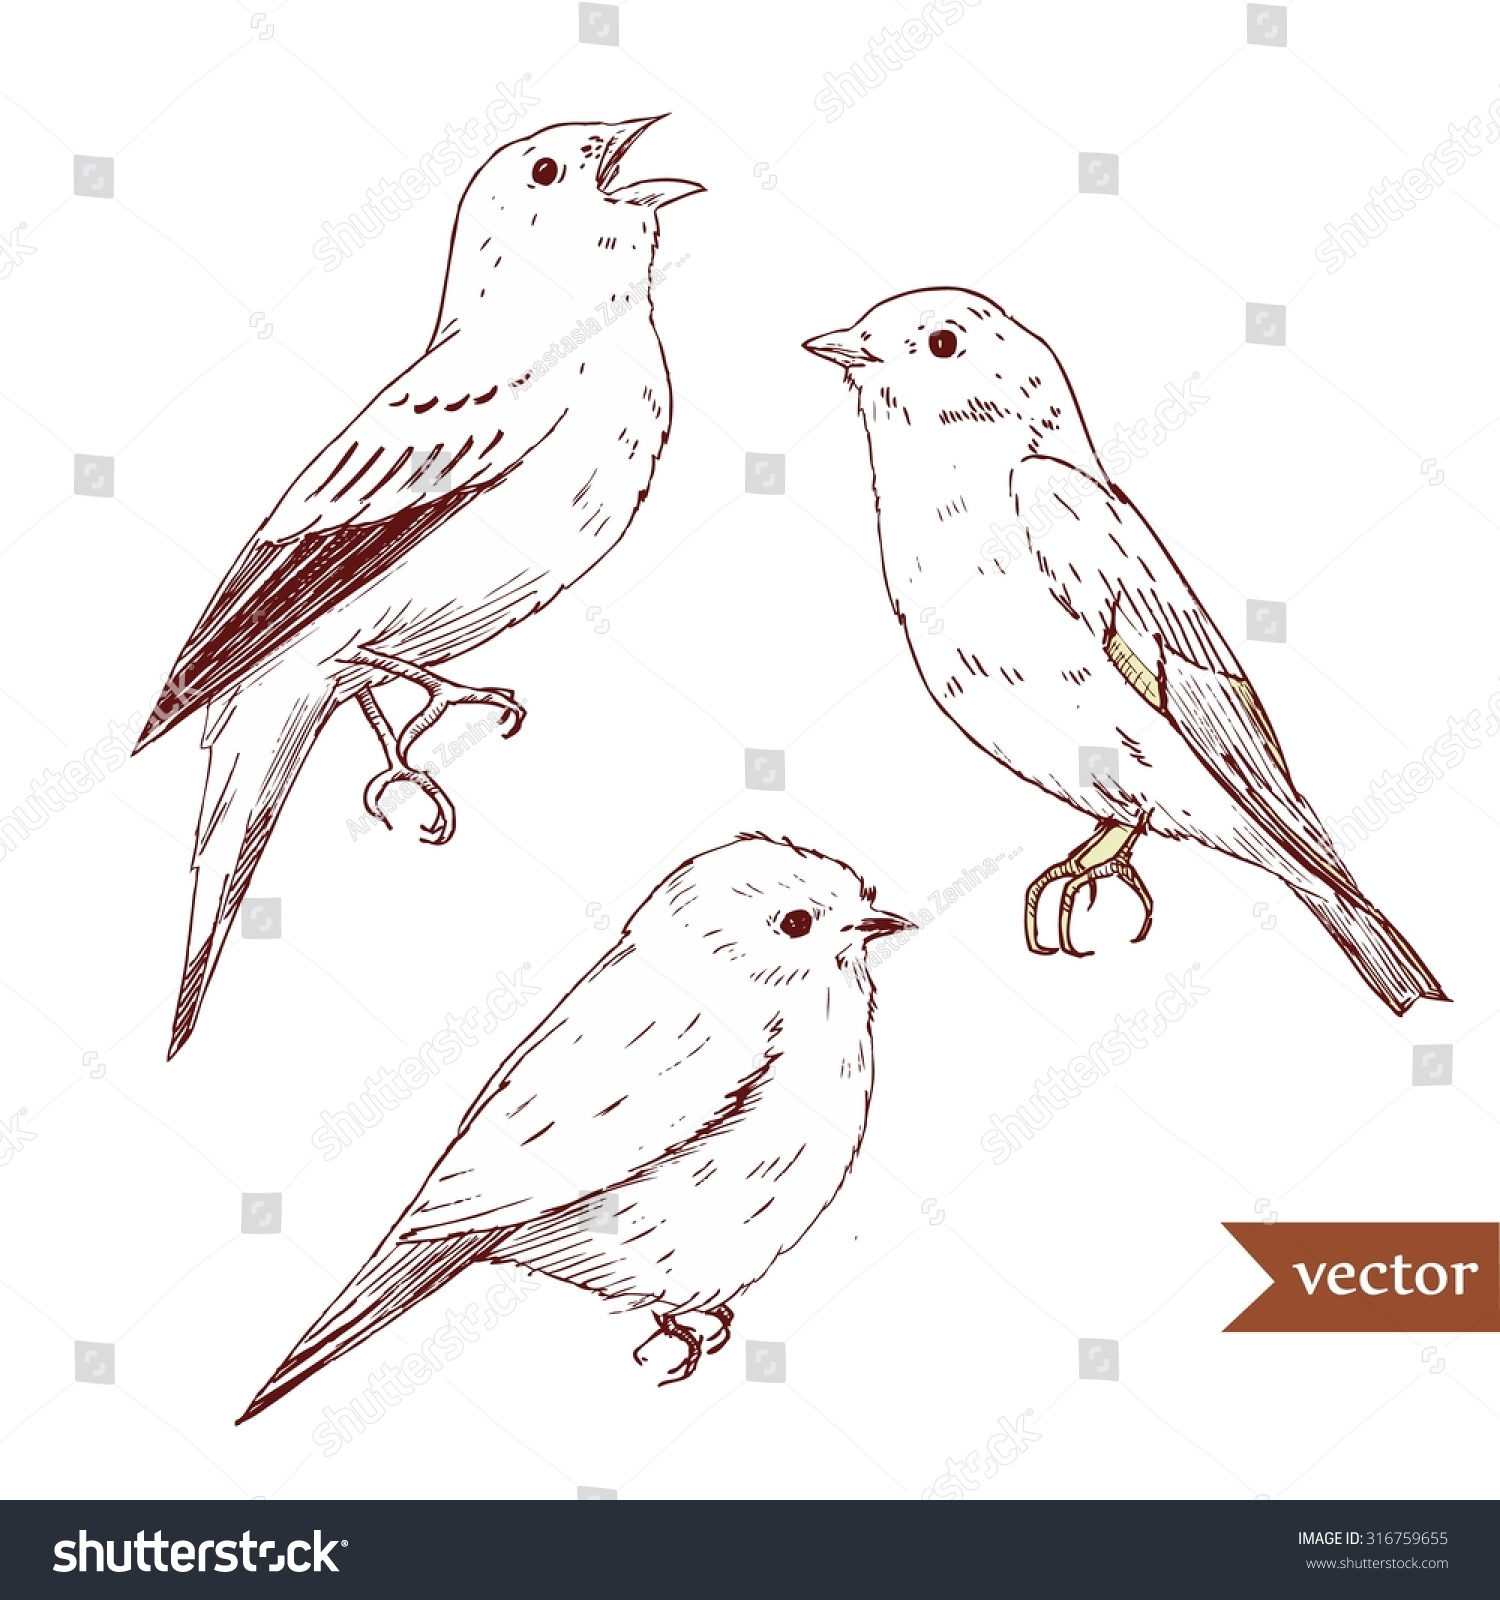 vector isolated drawing bird drawing pen stock vector 316759655